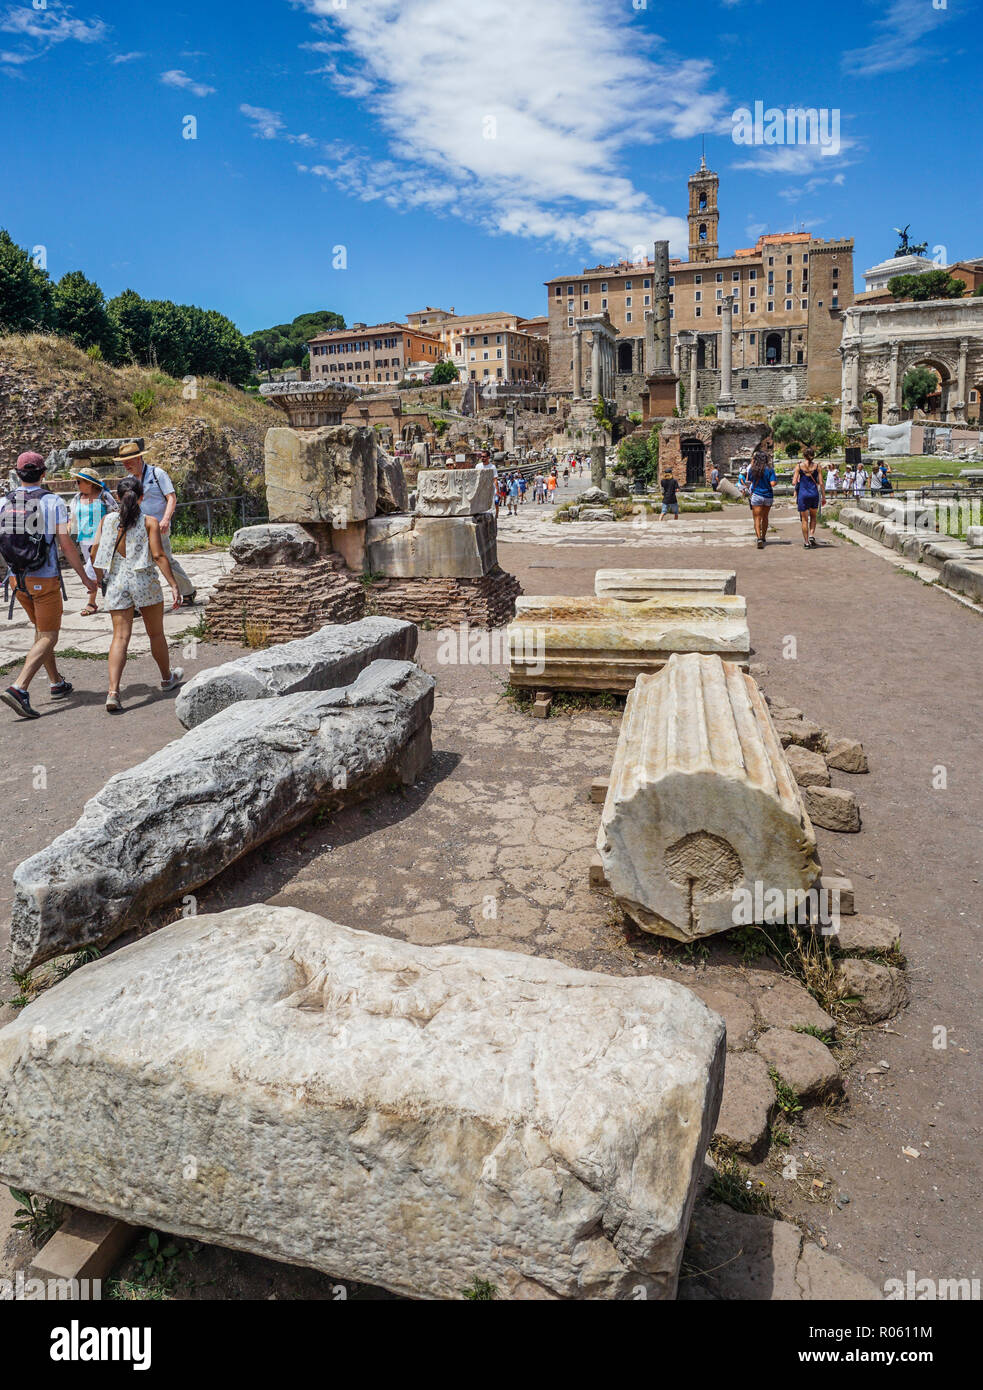 fragmented columns of the ruins of the Roman Forum at the Via Sacra, Rome, Italy - Stock Image